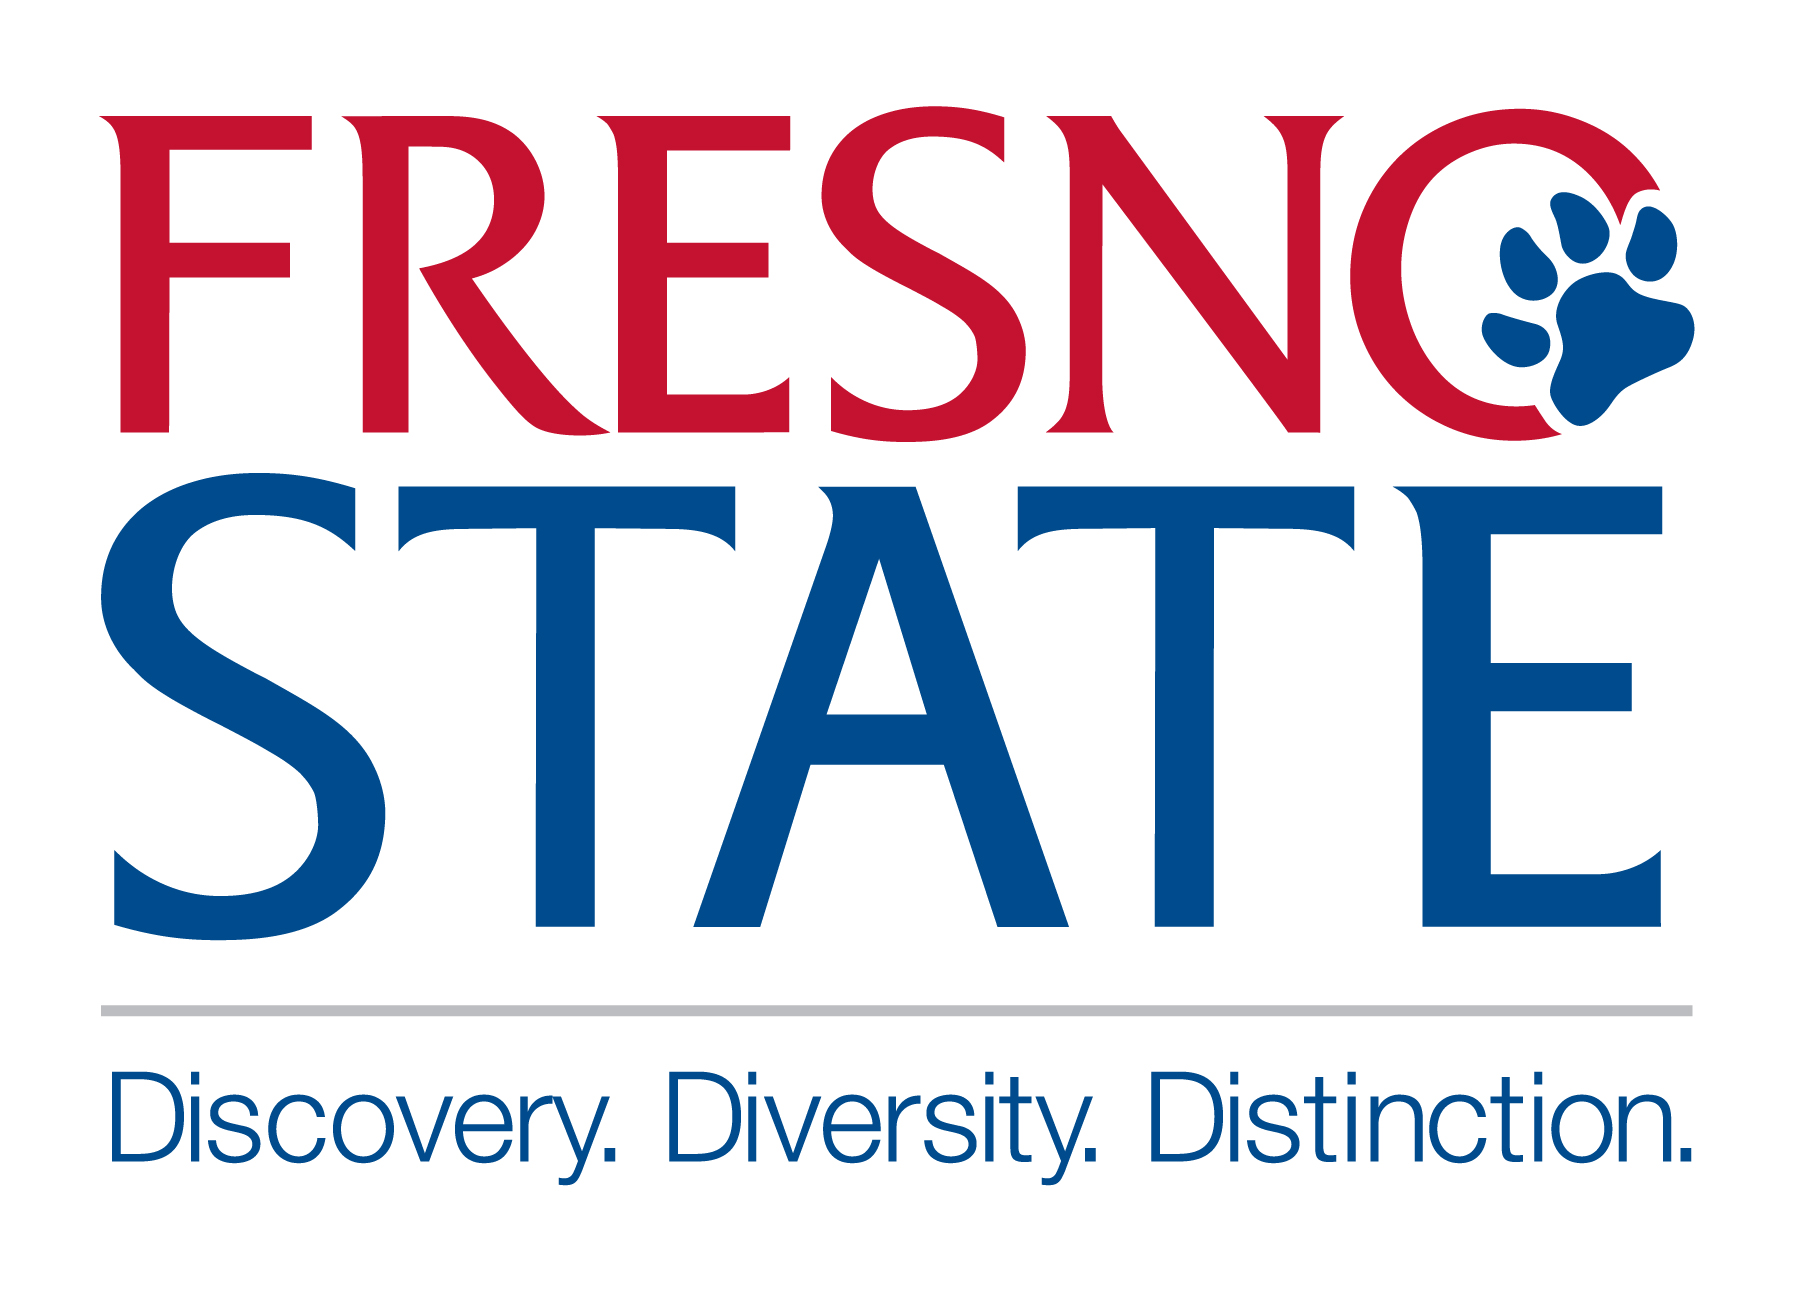 Fresno State Discovery. Diversity. Distinction.